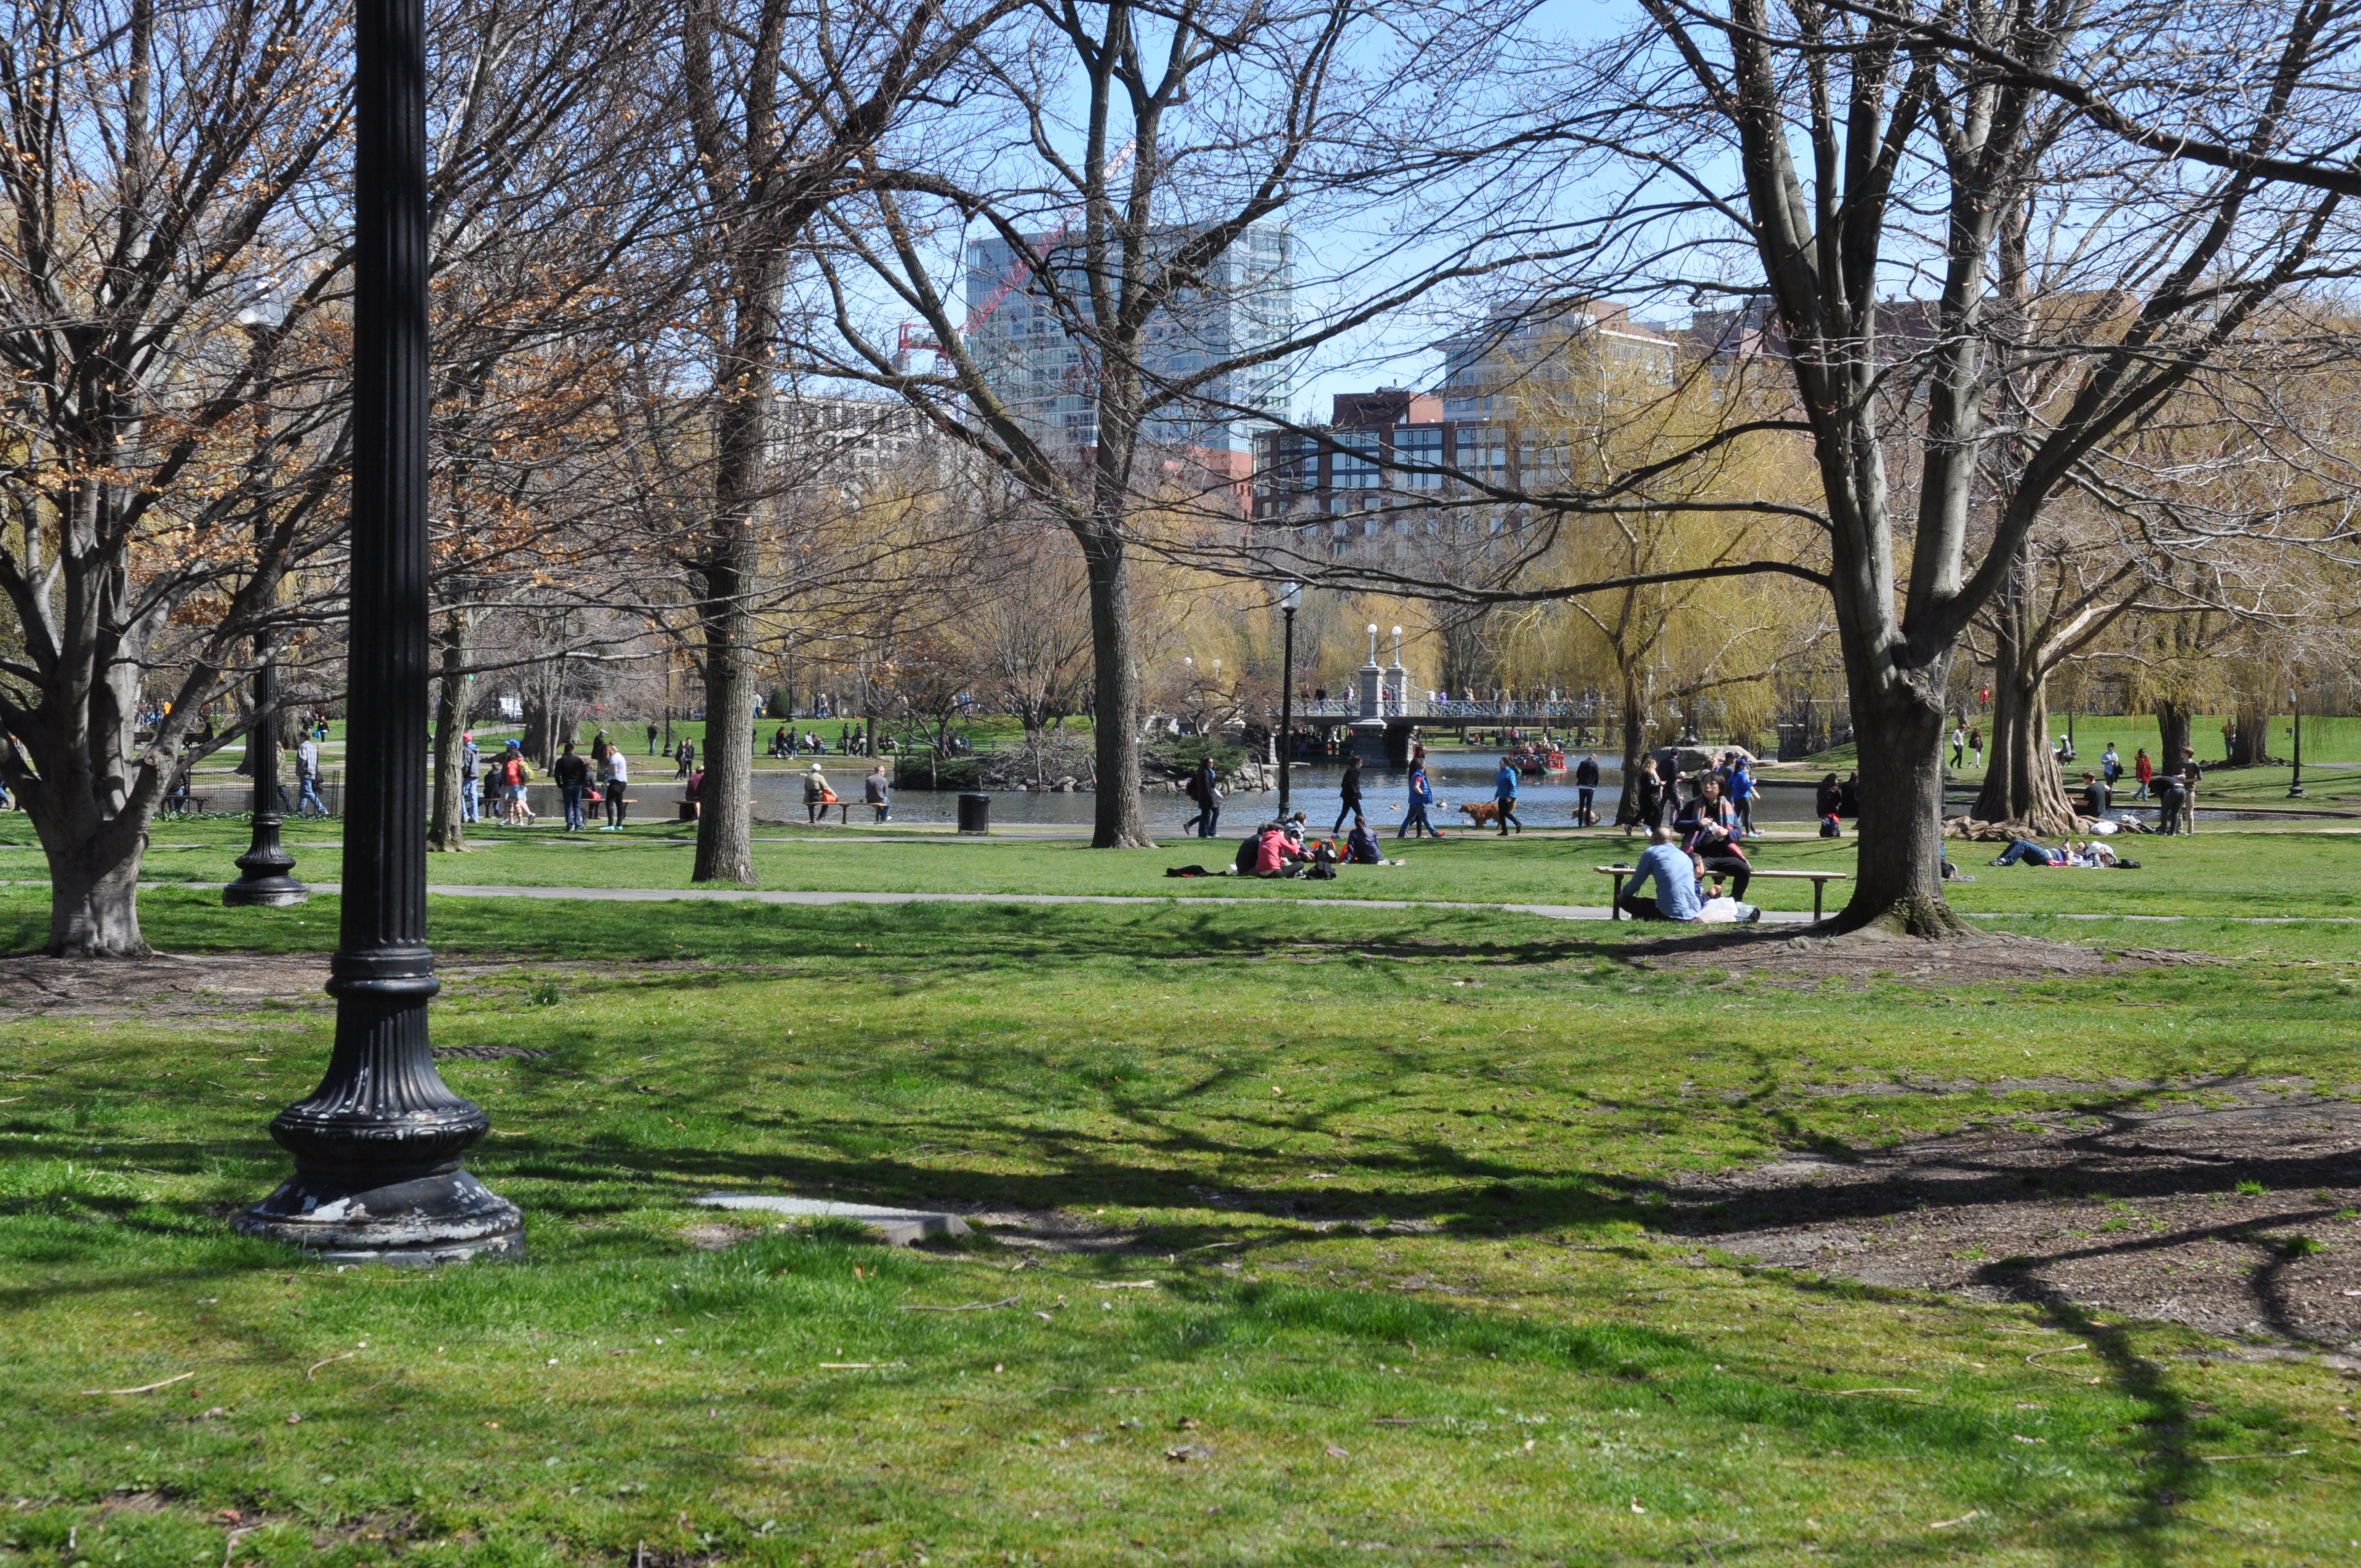 Public garden in Boston